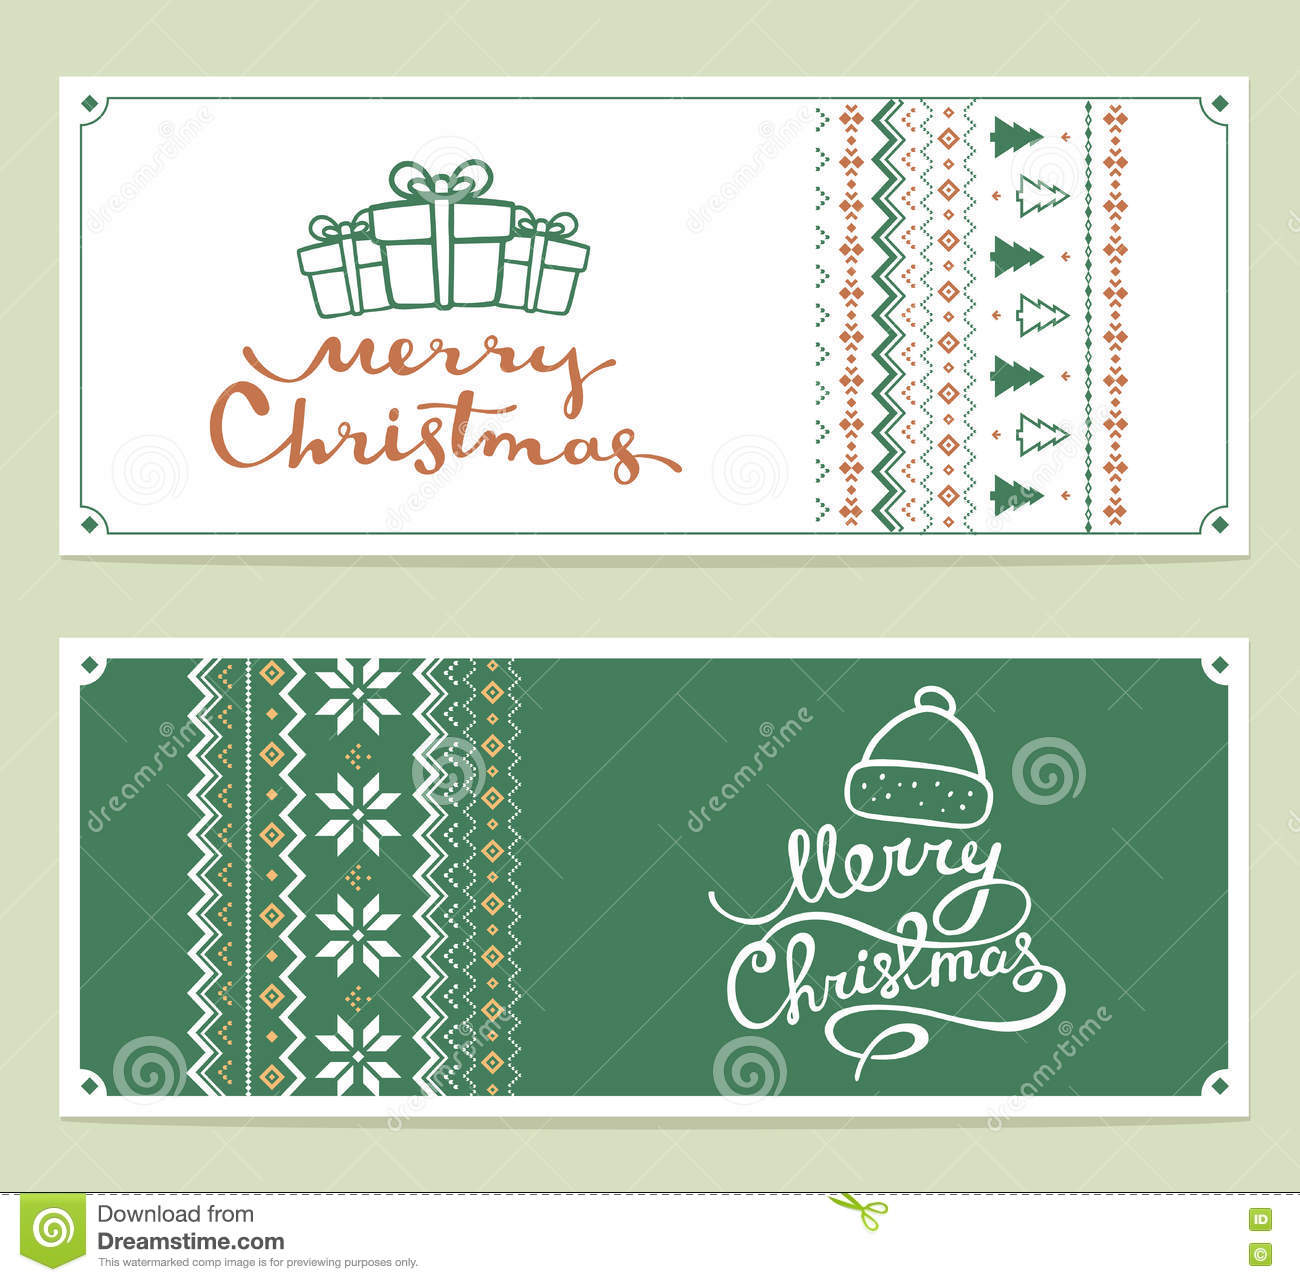 Two vector christmas stylized illustration with handwritten text